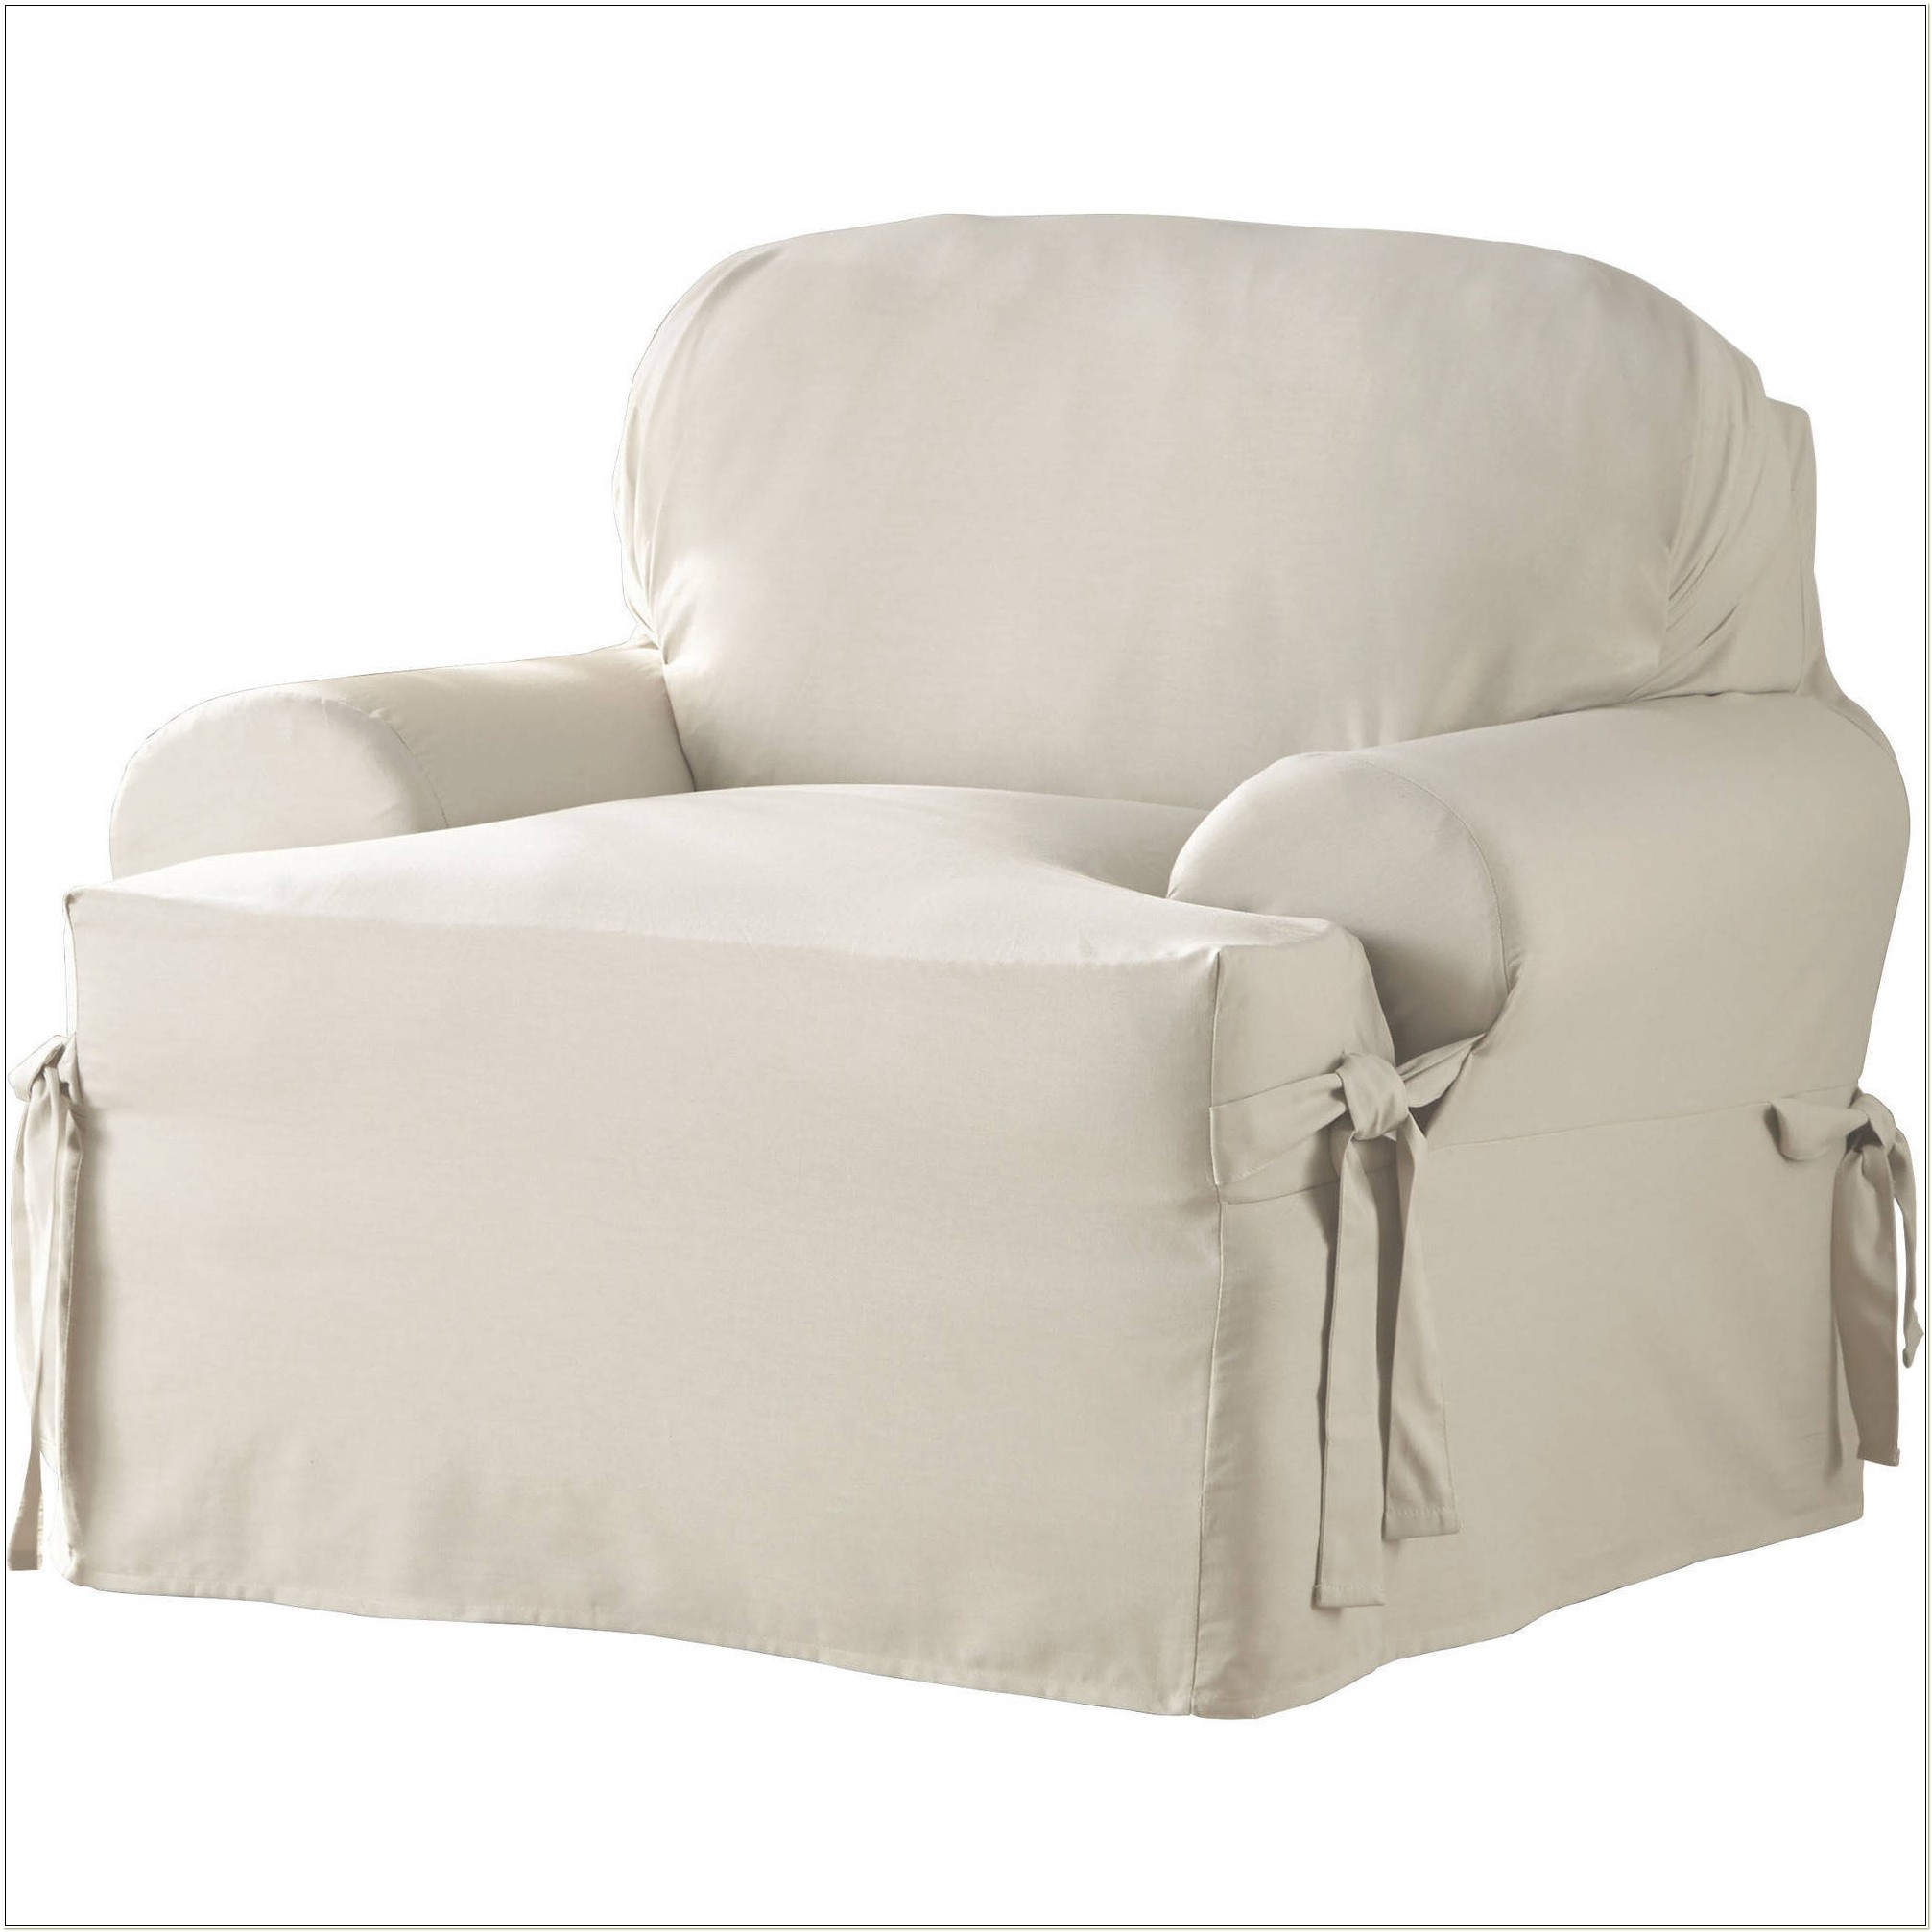 Slipcovers For Chairs With Arms T Cushion